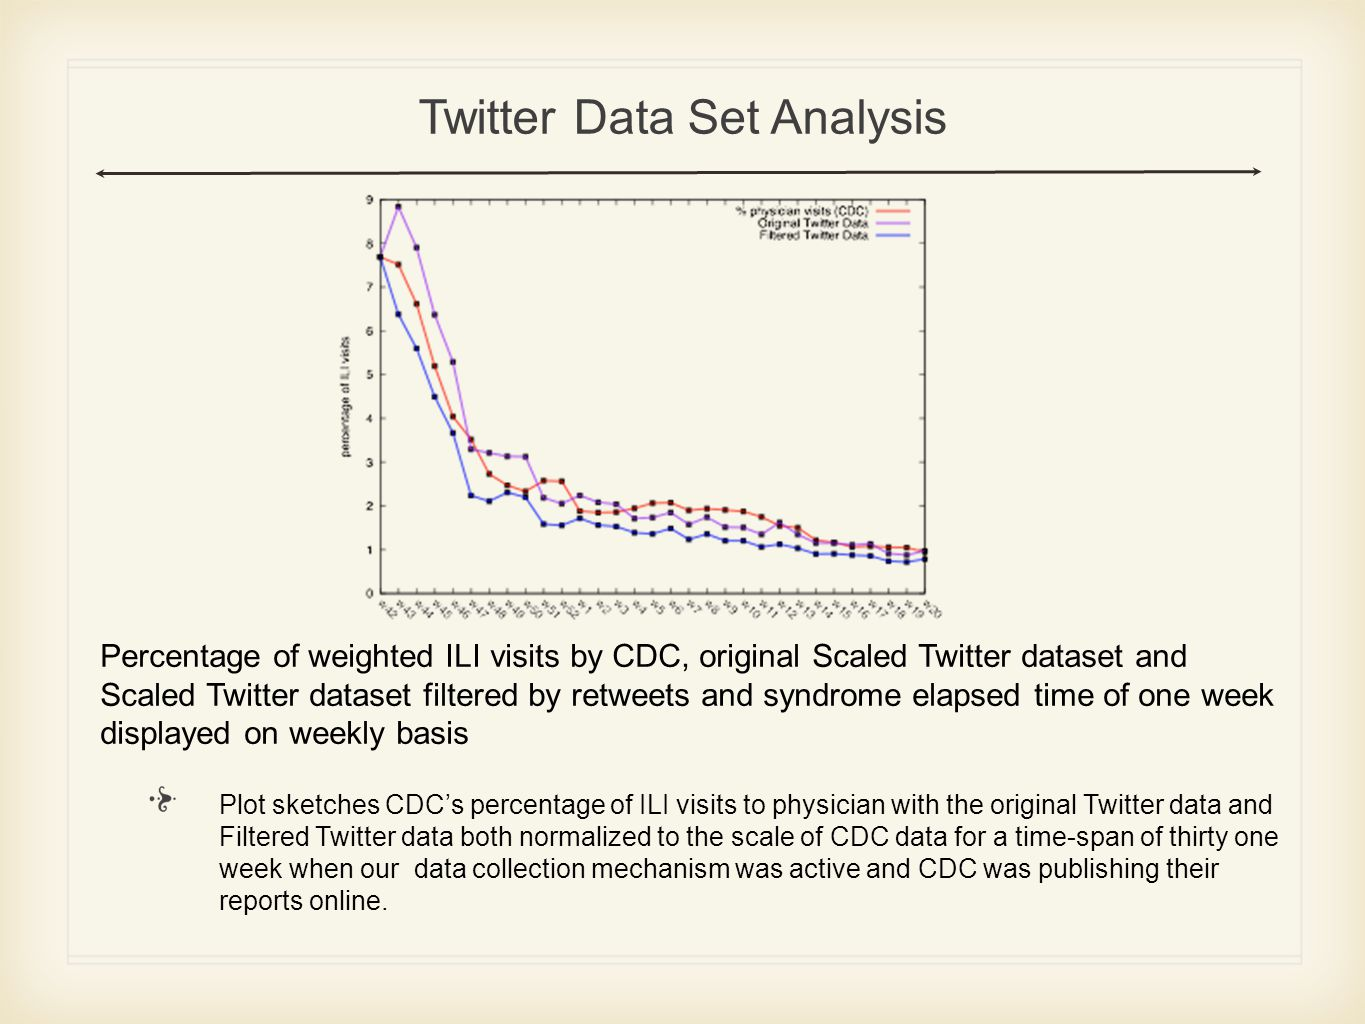 Percentage of weighted ILI visits by CDC, original Scaled Twitter dataset and Scaled Twitter dataset filtered by retweets and syndrome elapsed time of one week displayed on weekly basis Twitter Data Set Analysis Plot sketches CDC's percentage of ILI visits to physician with the original Twitter data and Filtered Twitter data both normalized to the scale of CDC data for a time-span of thirty one week when our data collection mechanism was active and CDC was publishing their reports online.